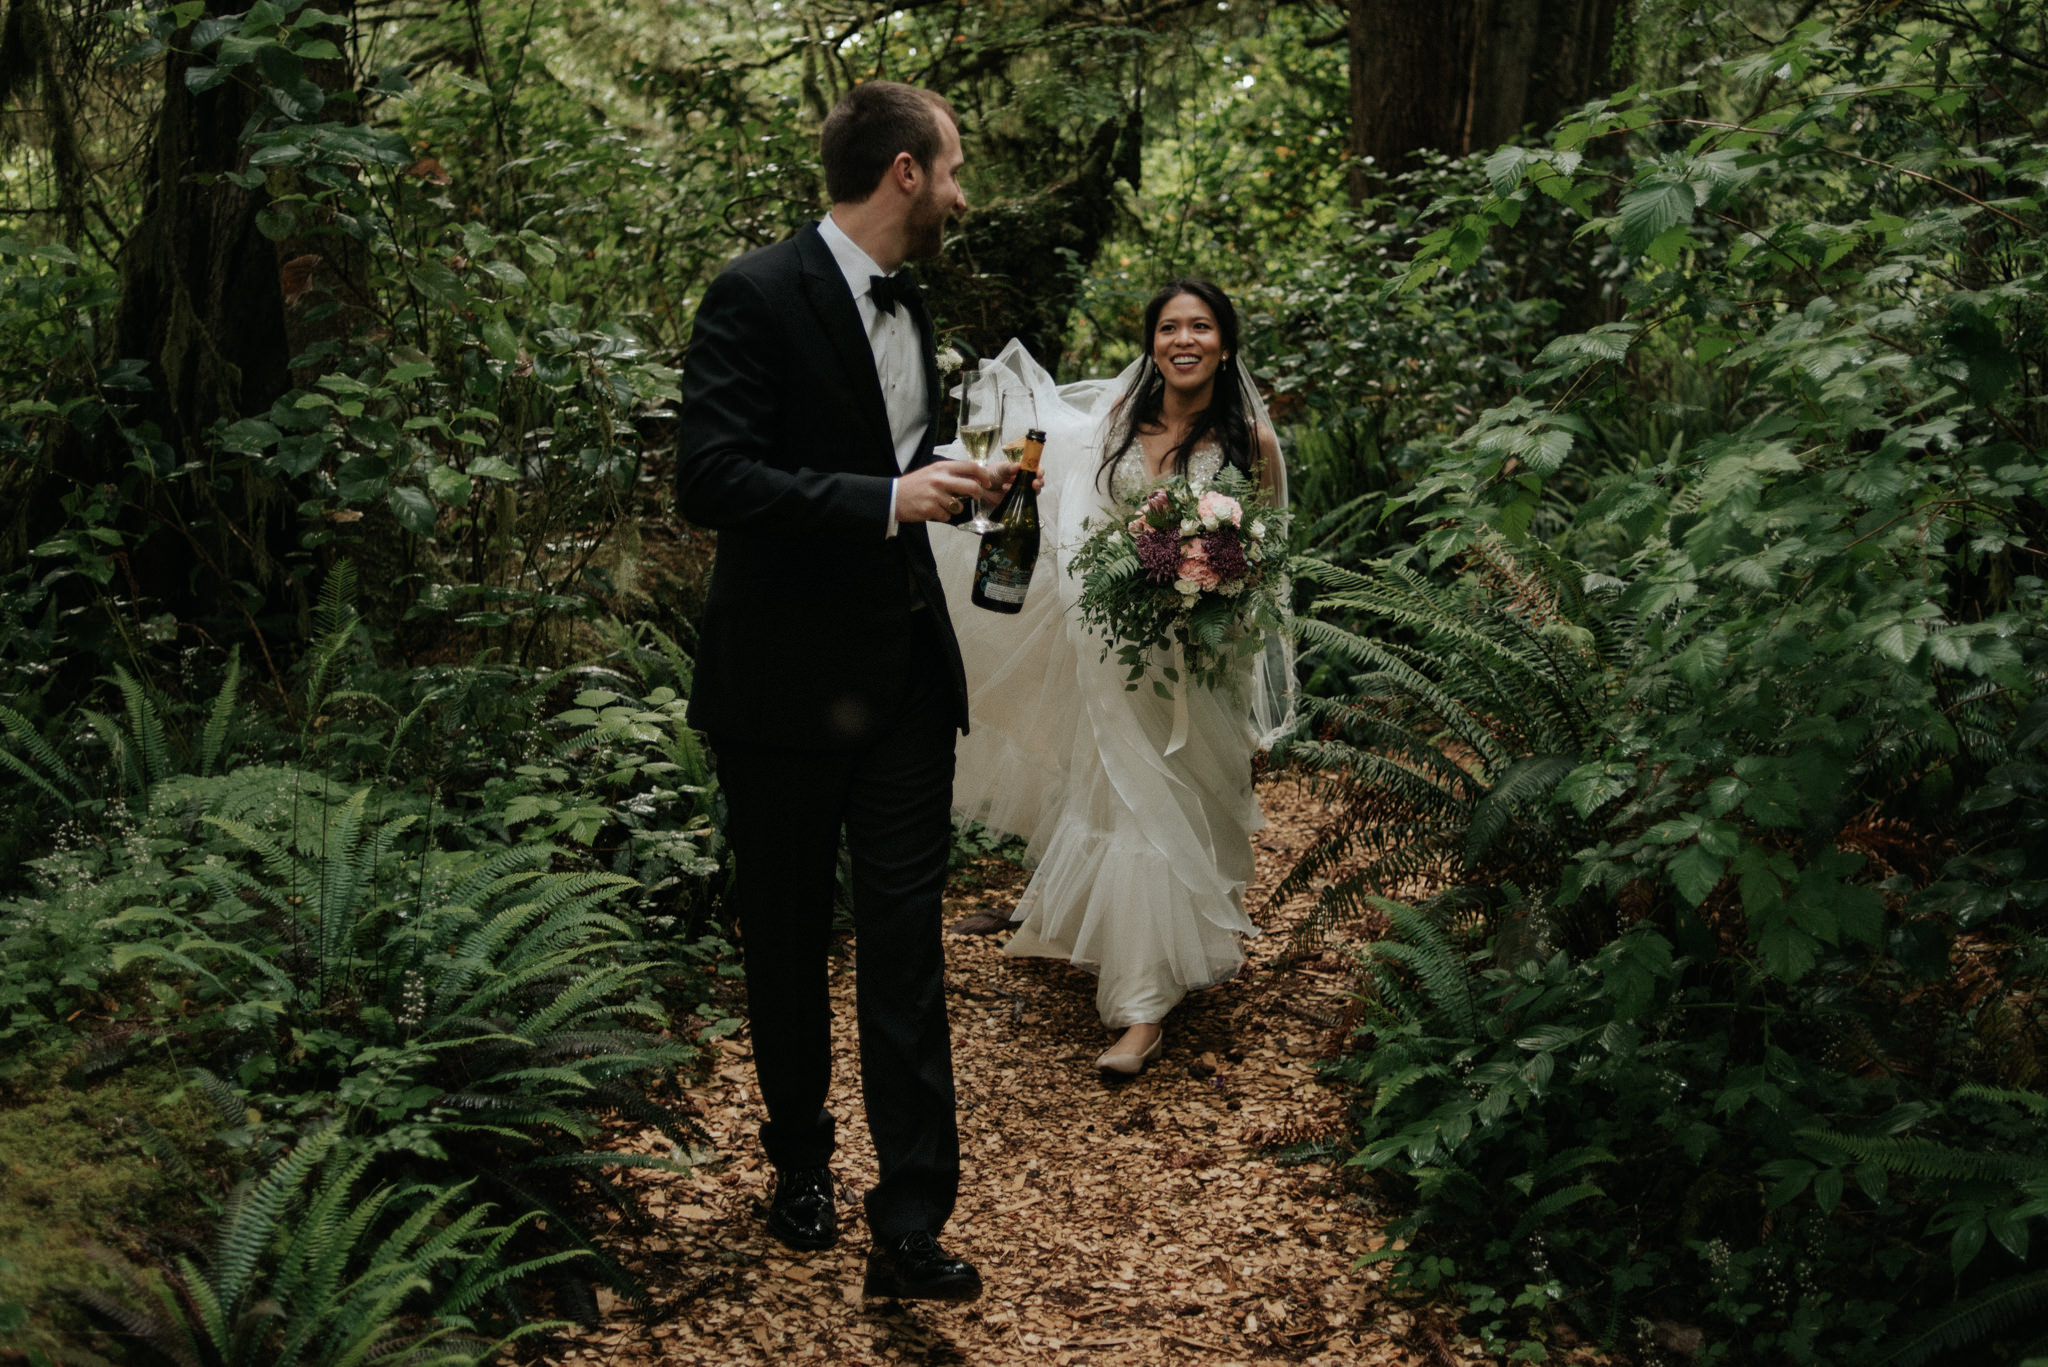 bride and groom drinking champagne after wedding ceremony in forest in Tofino